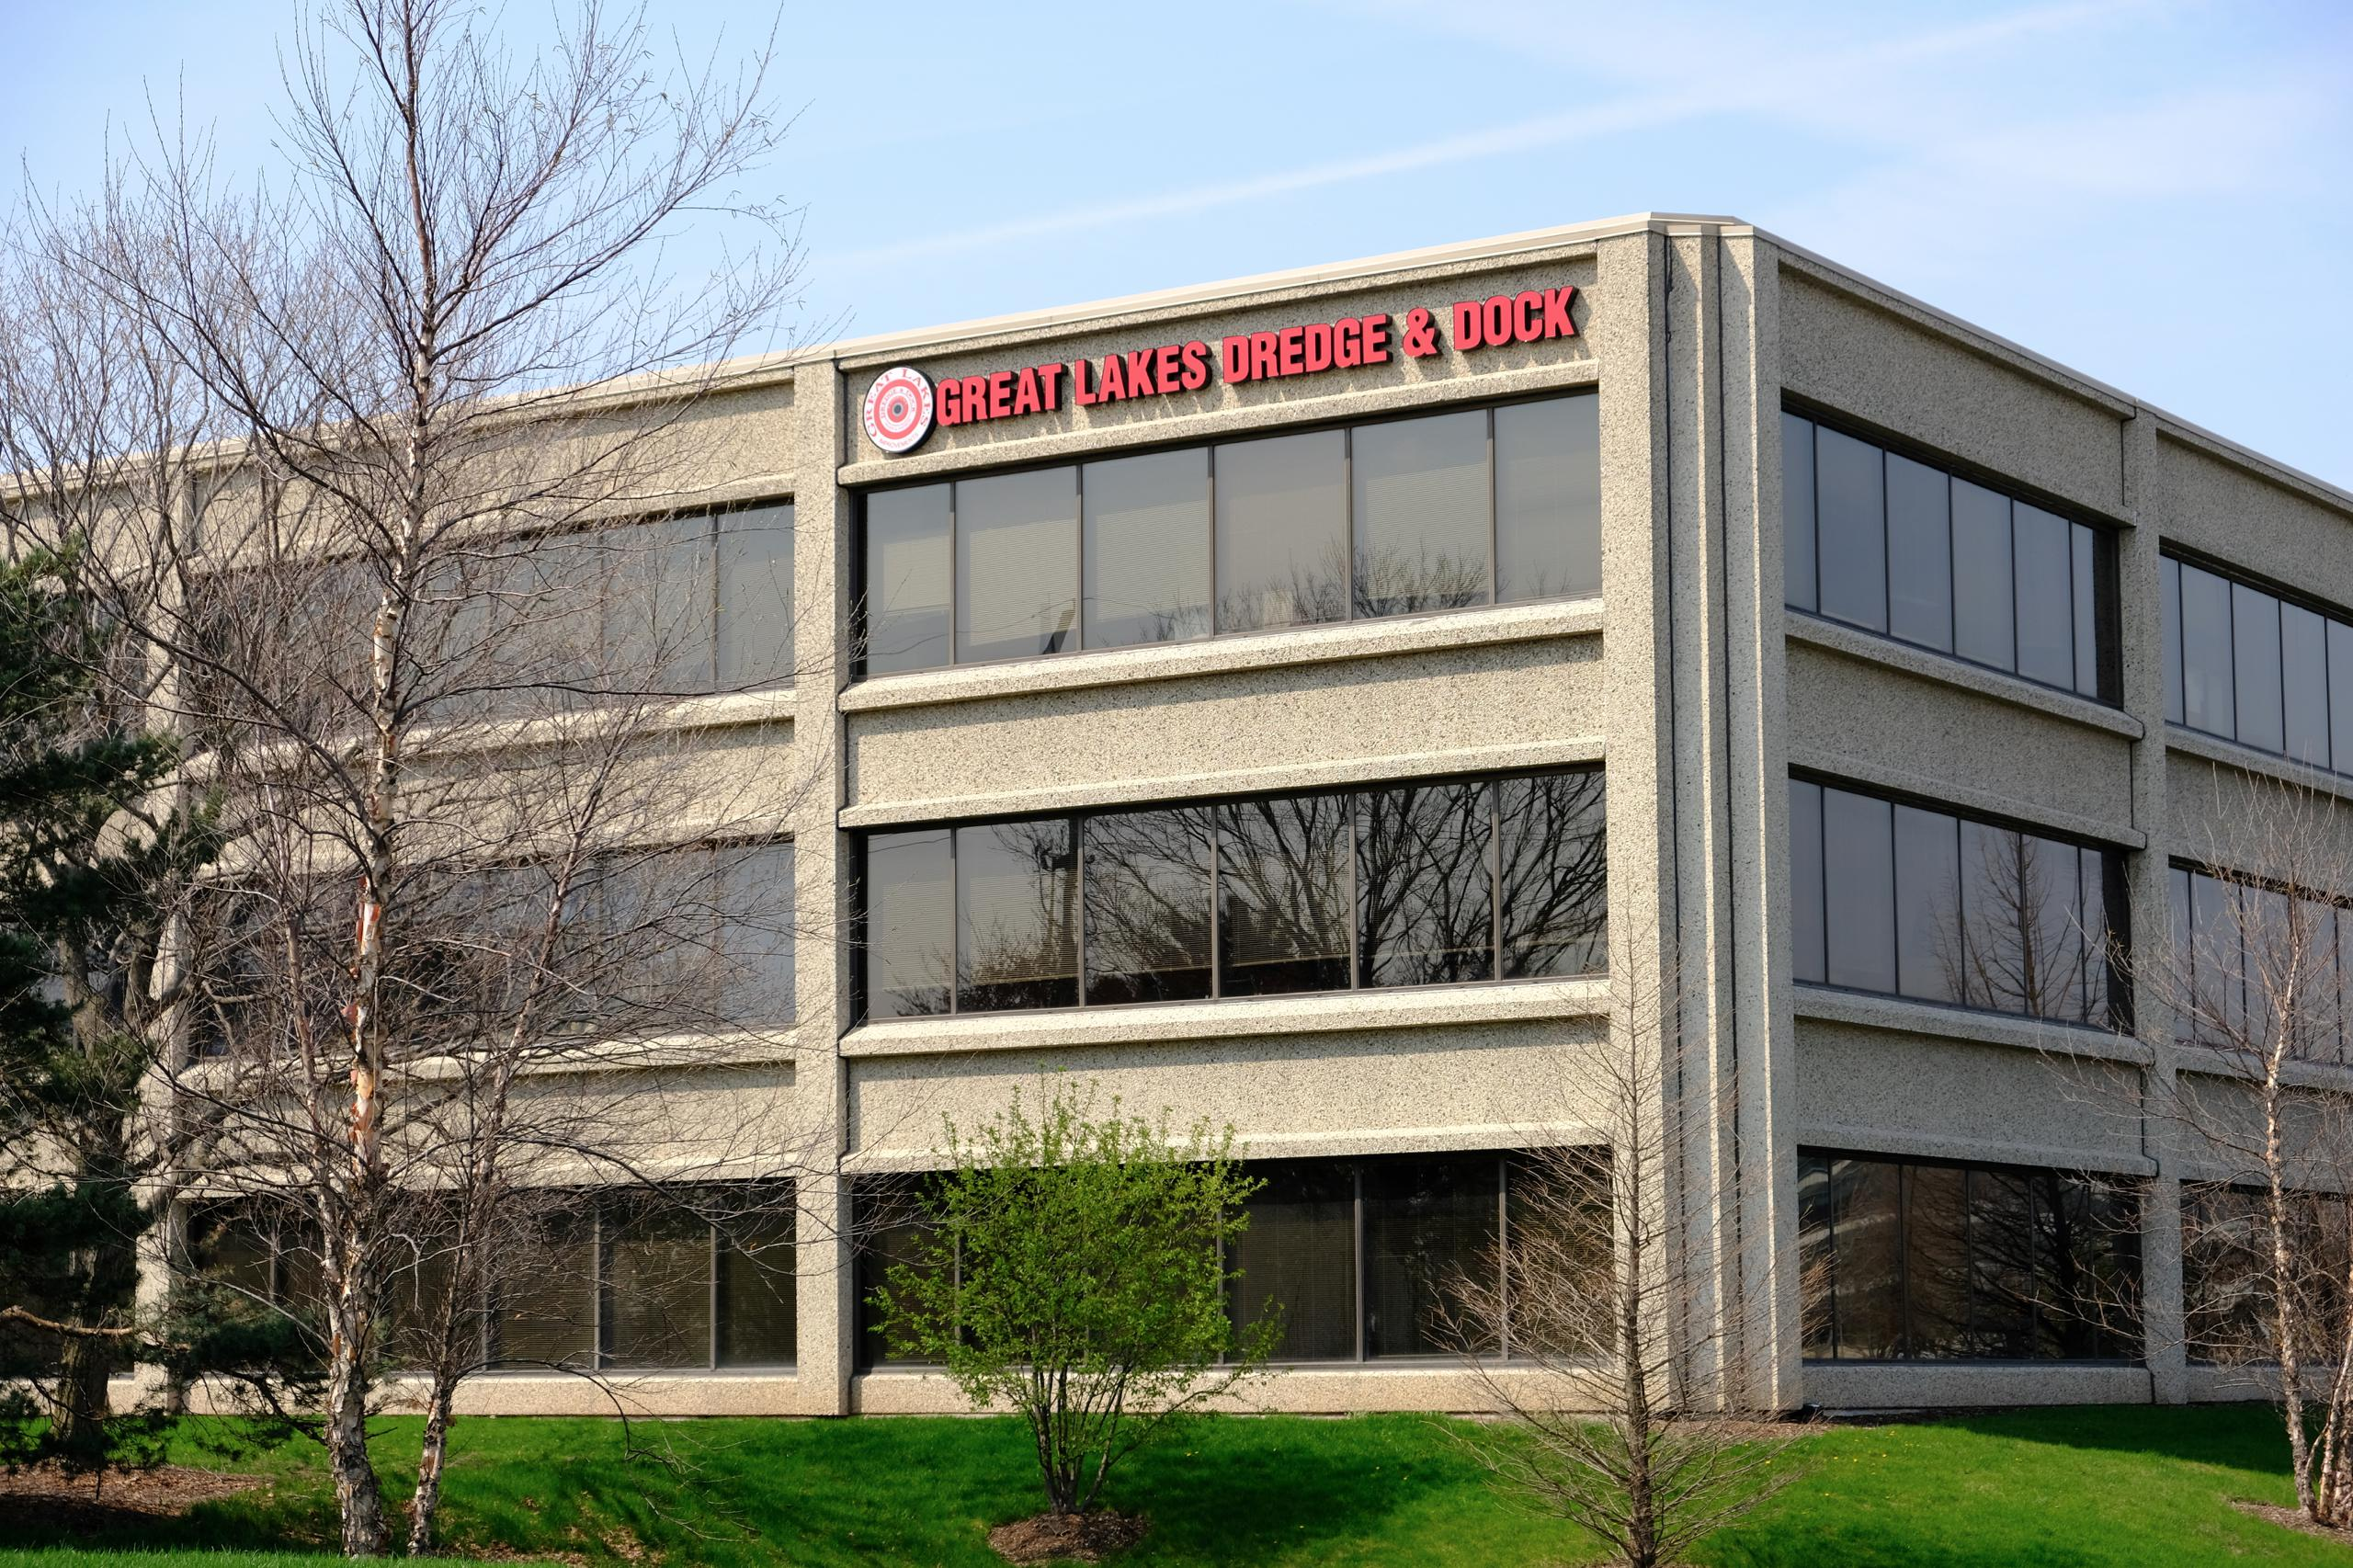 Great Lakes Dredge & Dock's corporate headquarters in Oak Brook, Illinois.